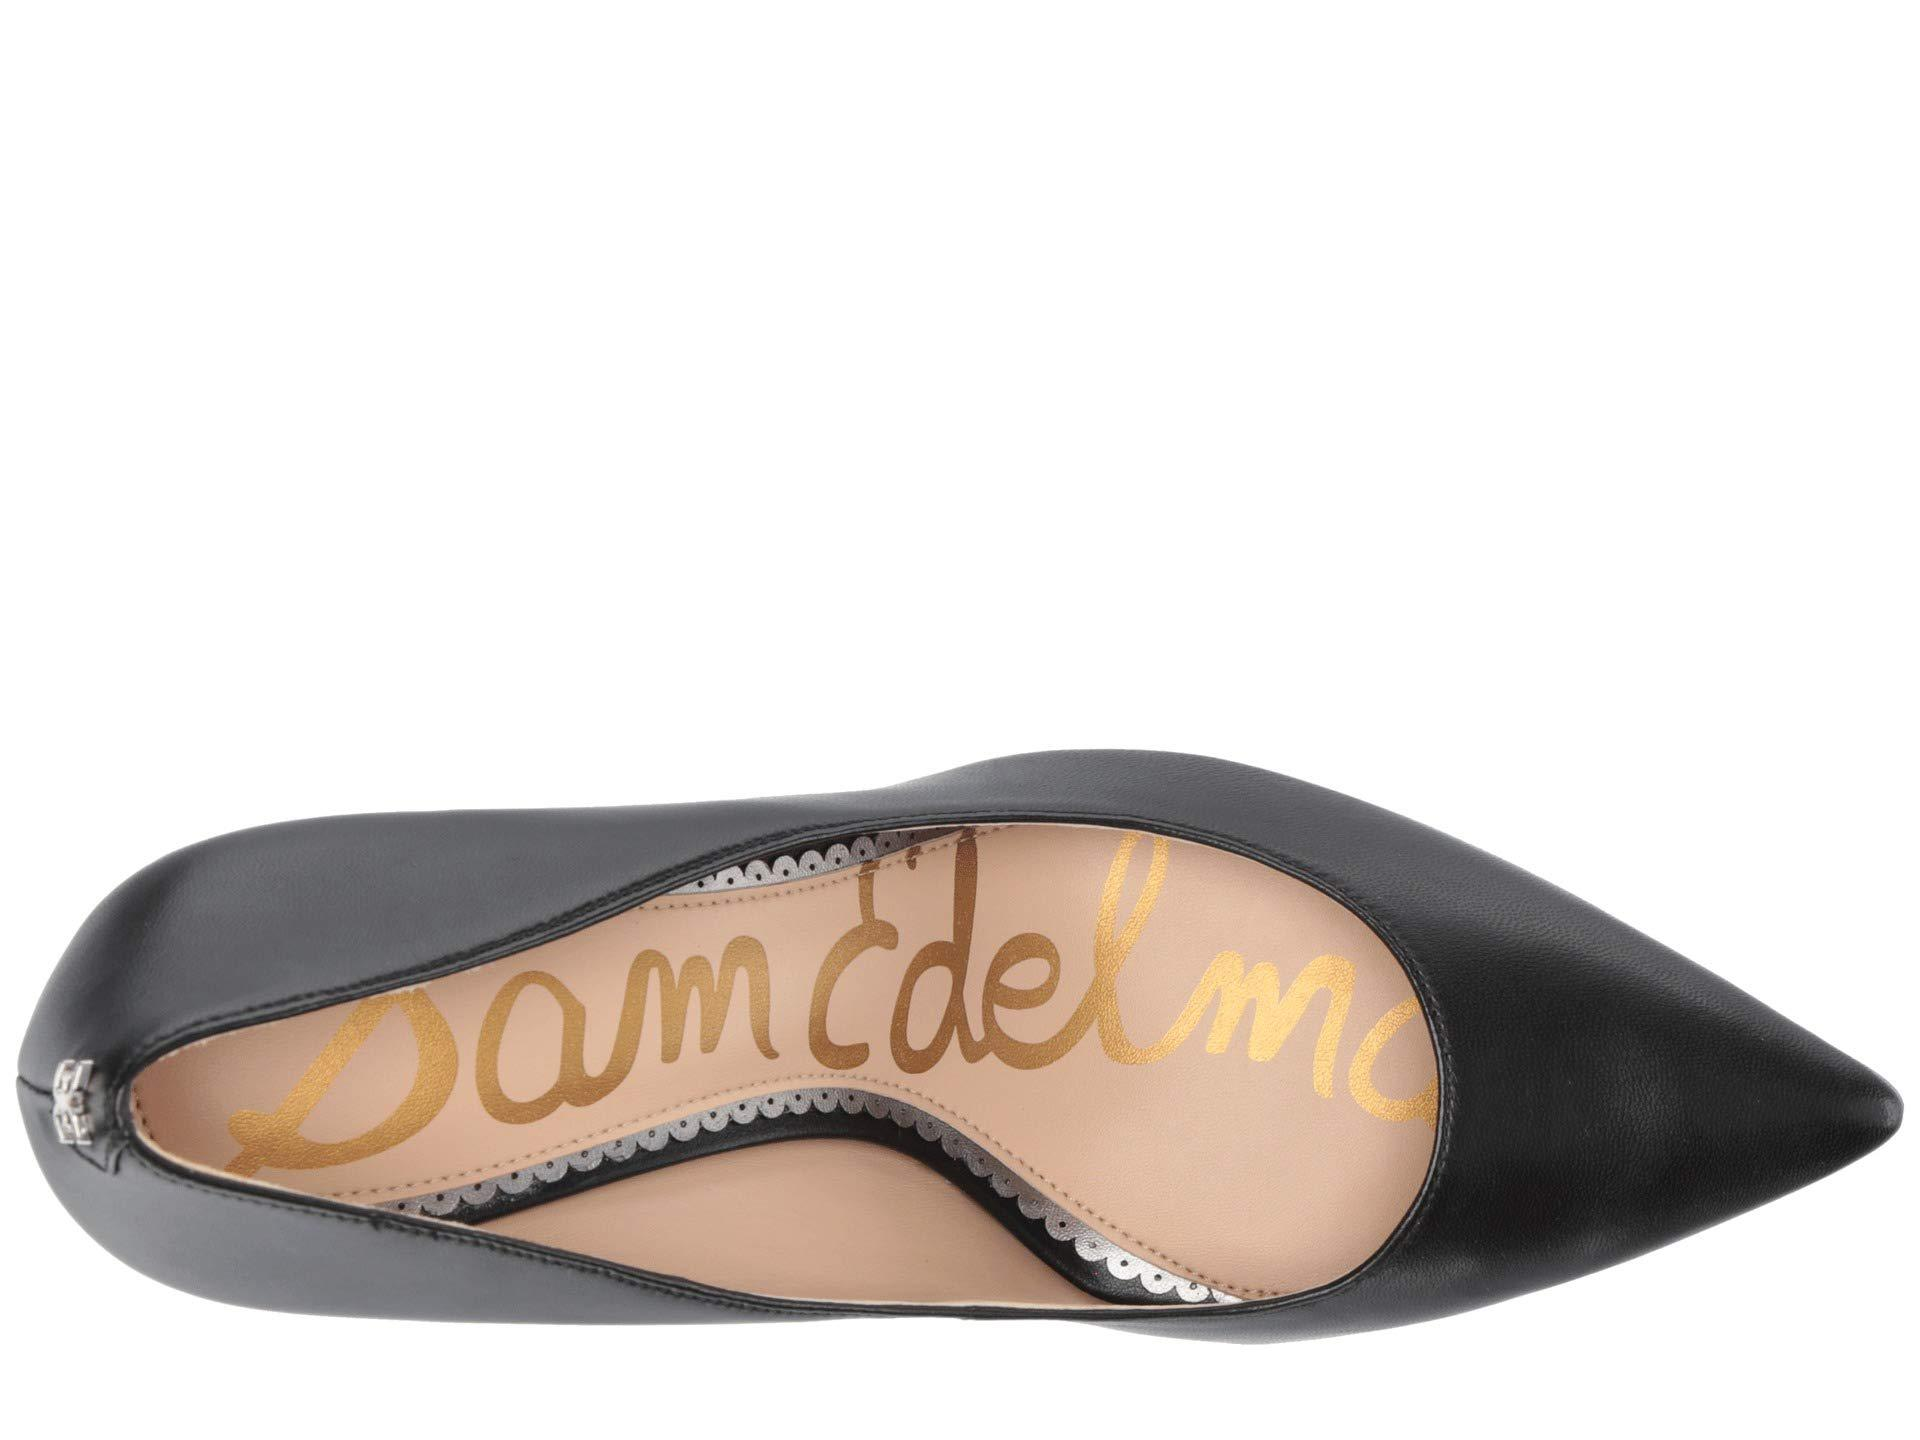 9ed785ccf Sam Edelman - Black Margie (soft Silver Tropical Snake Metallic Leather)  Women s Shoes -. View fullscreen